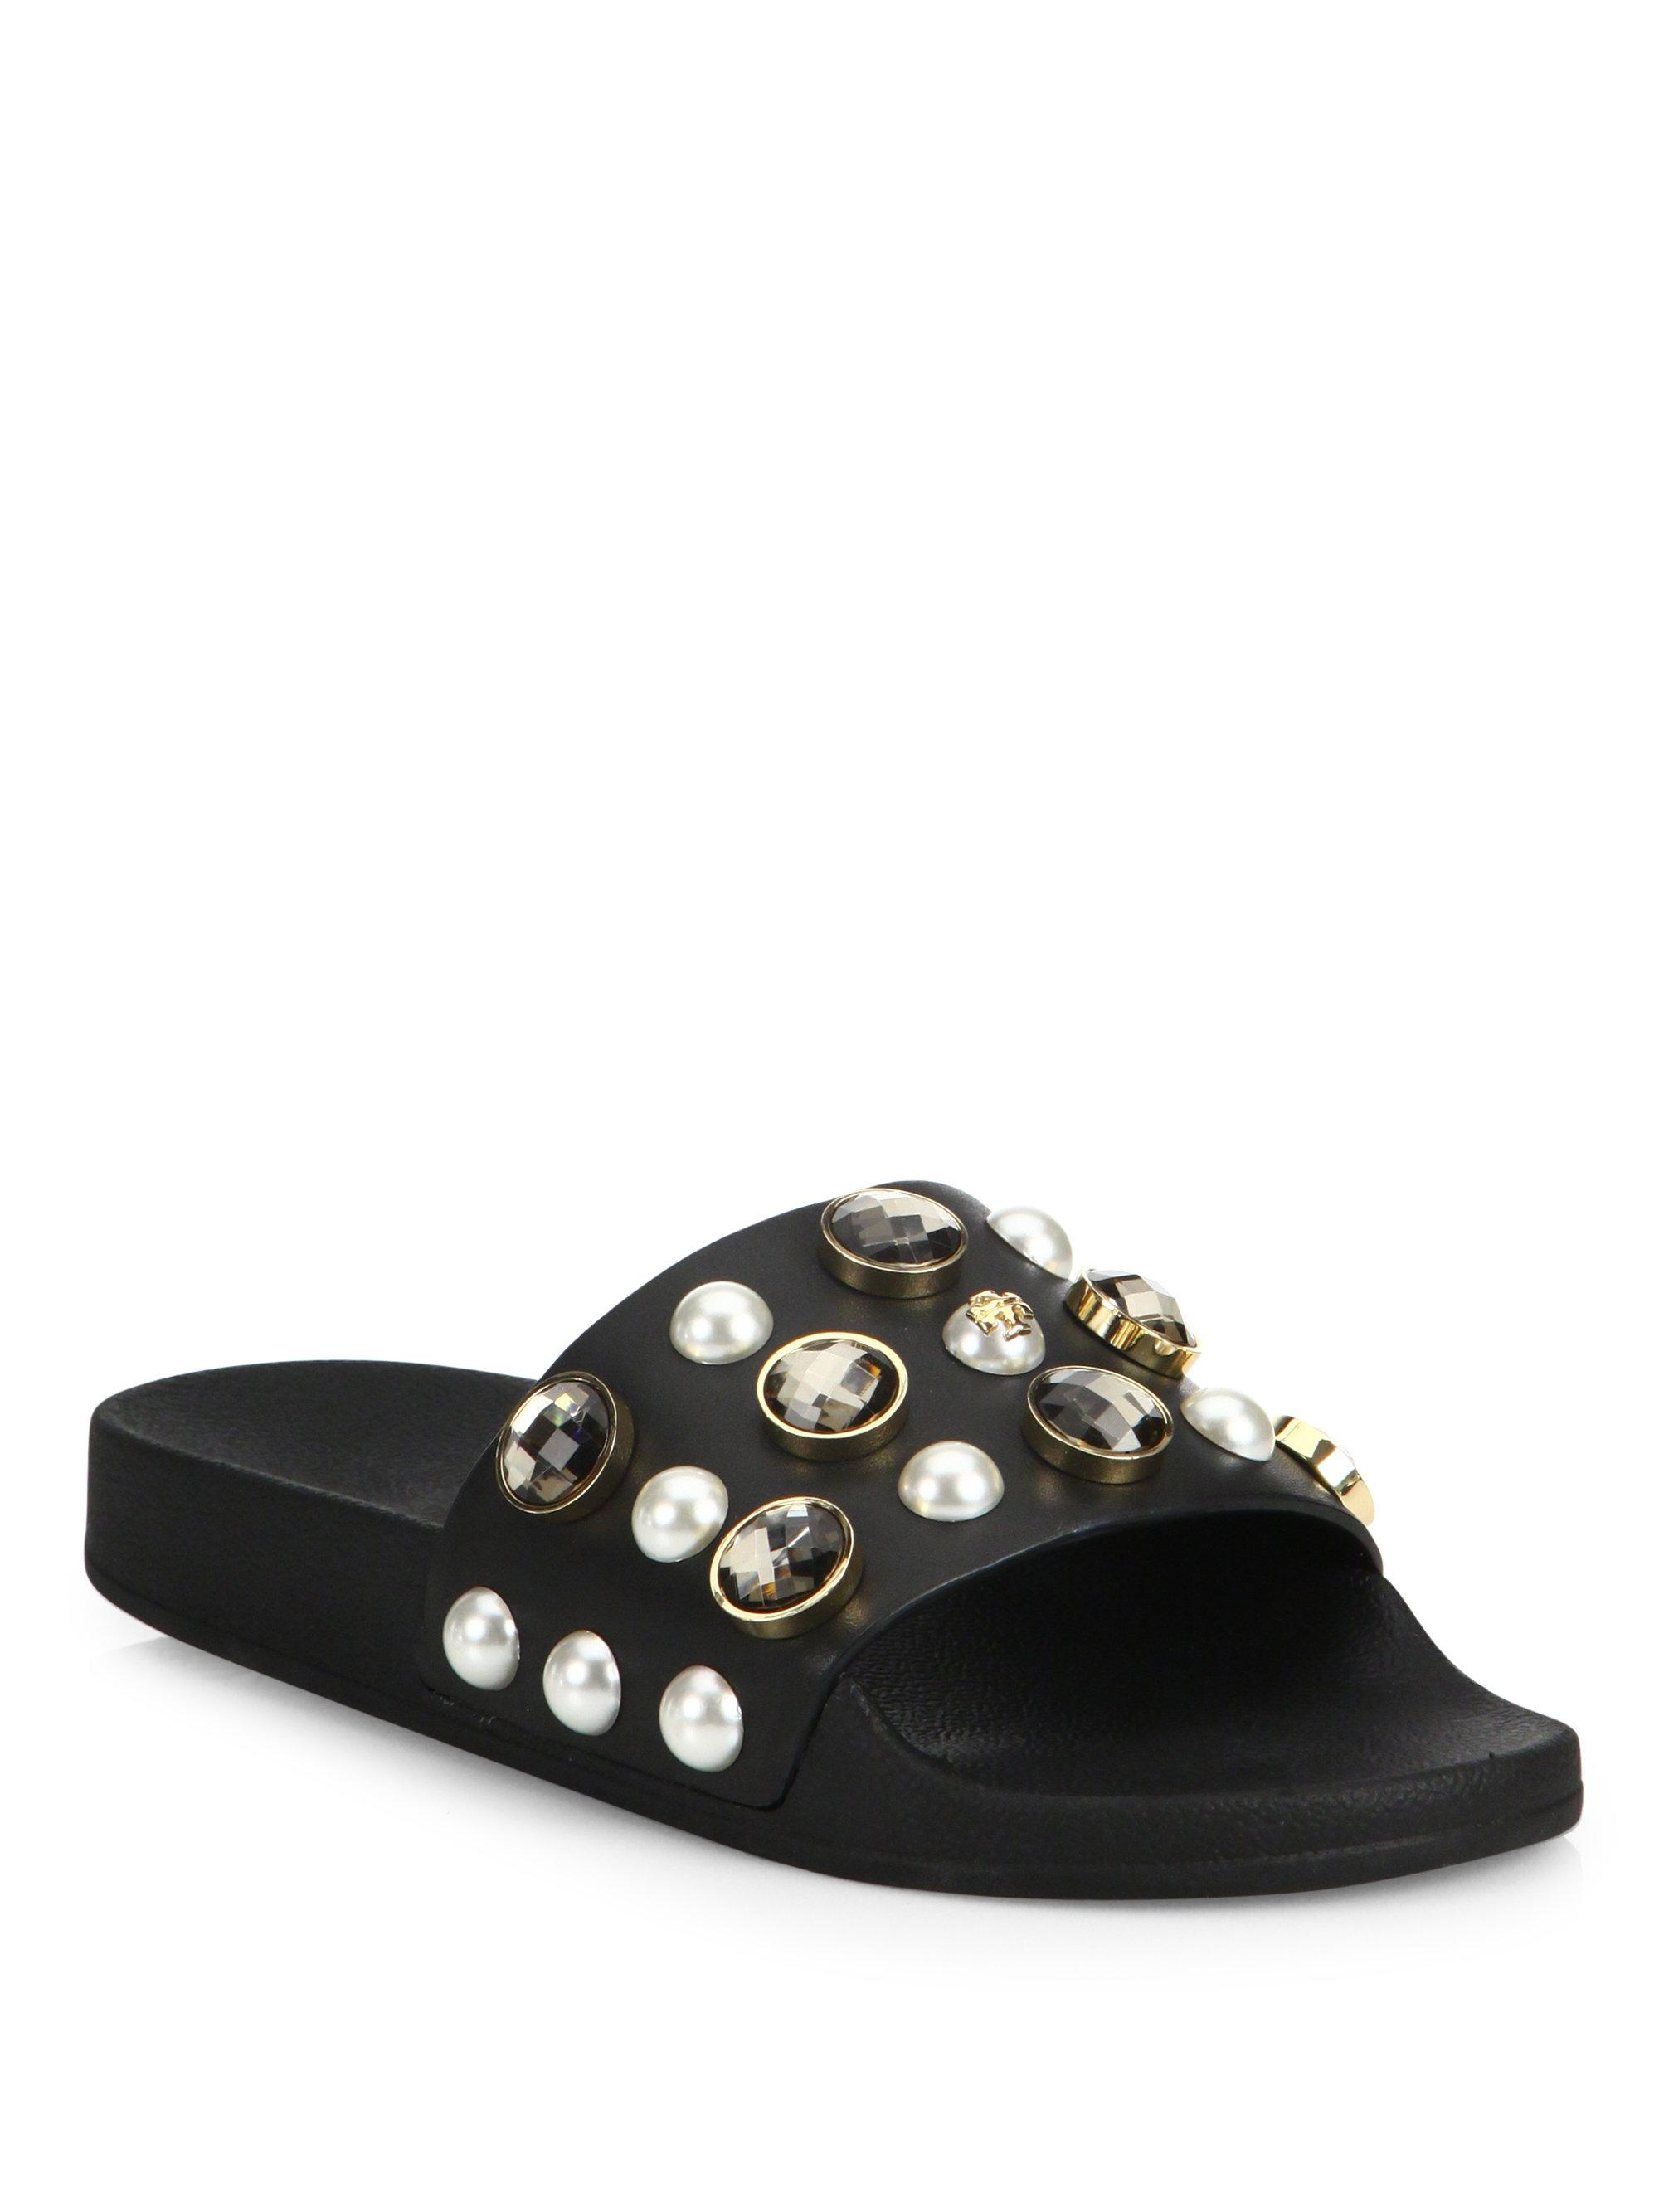 Tory Burch Vail Jeweled Leather Slides In Black Lyst